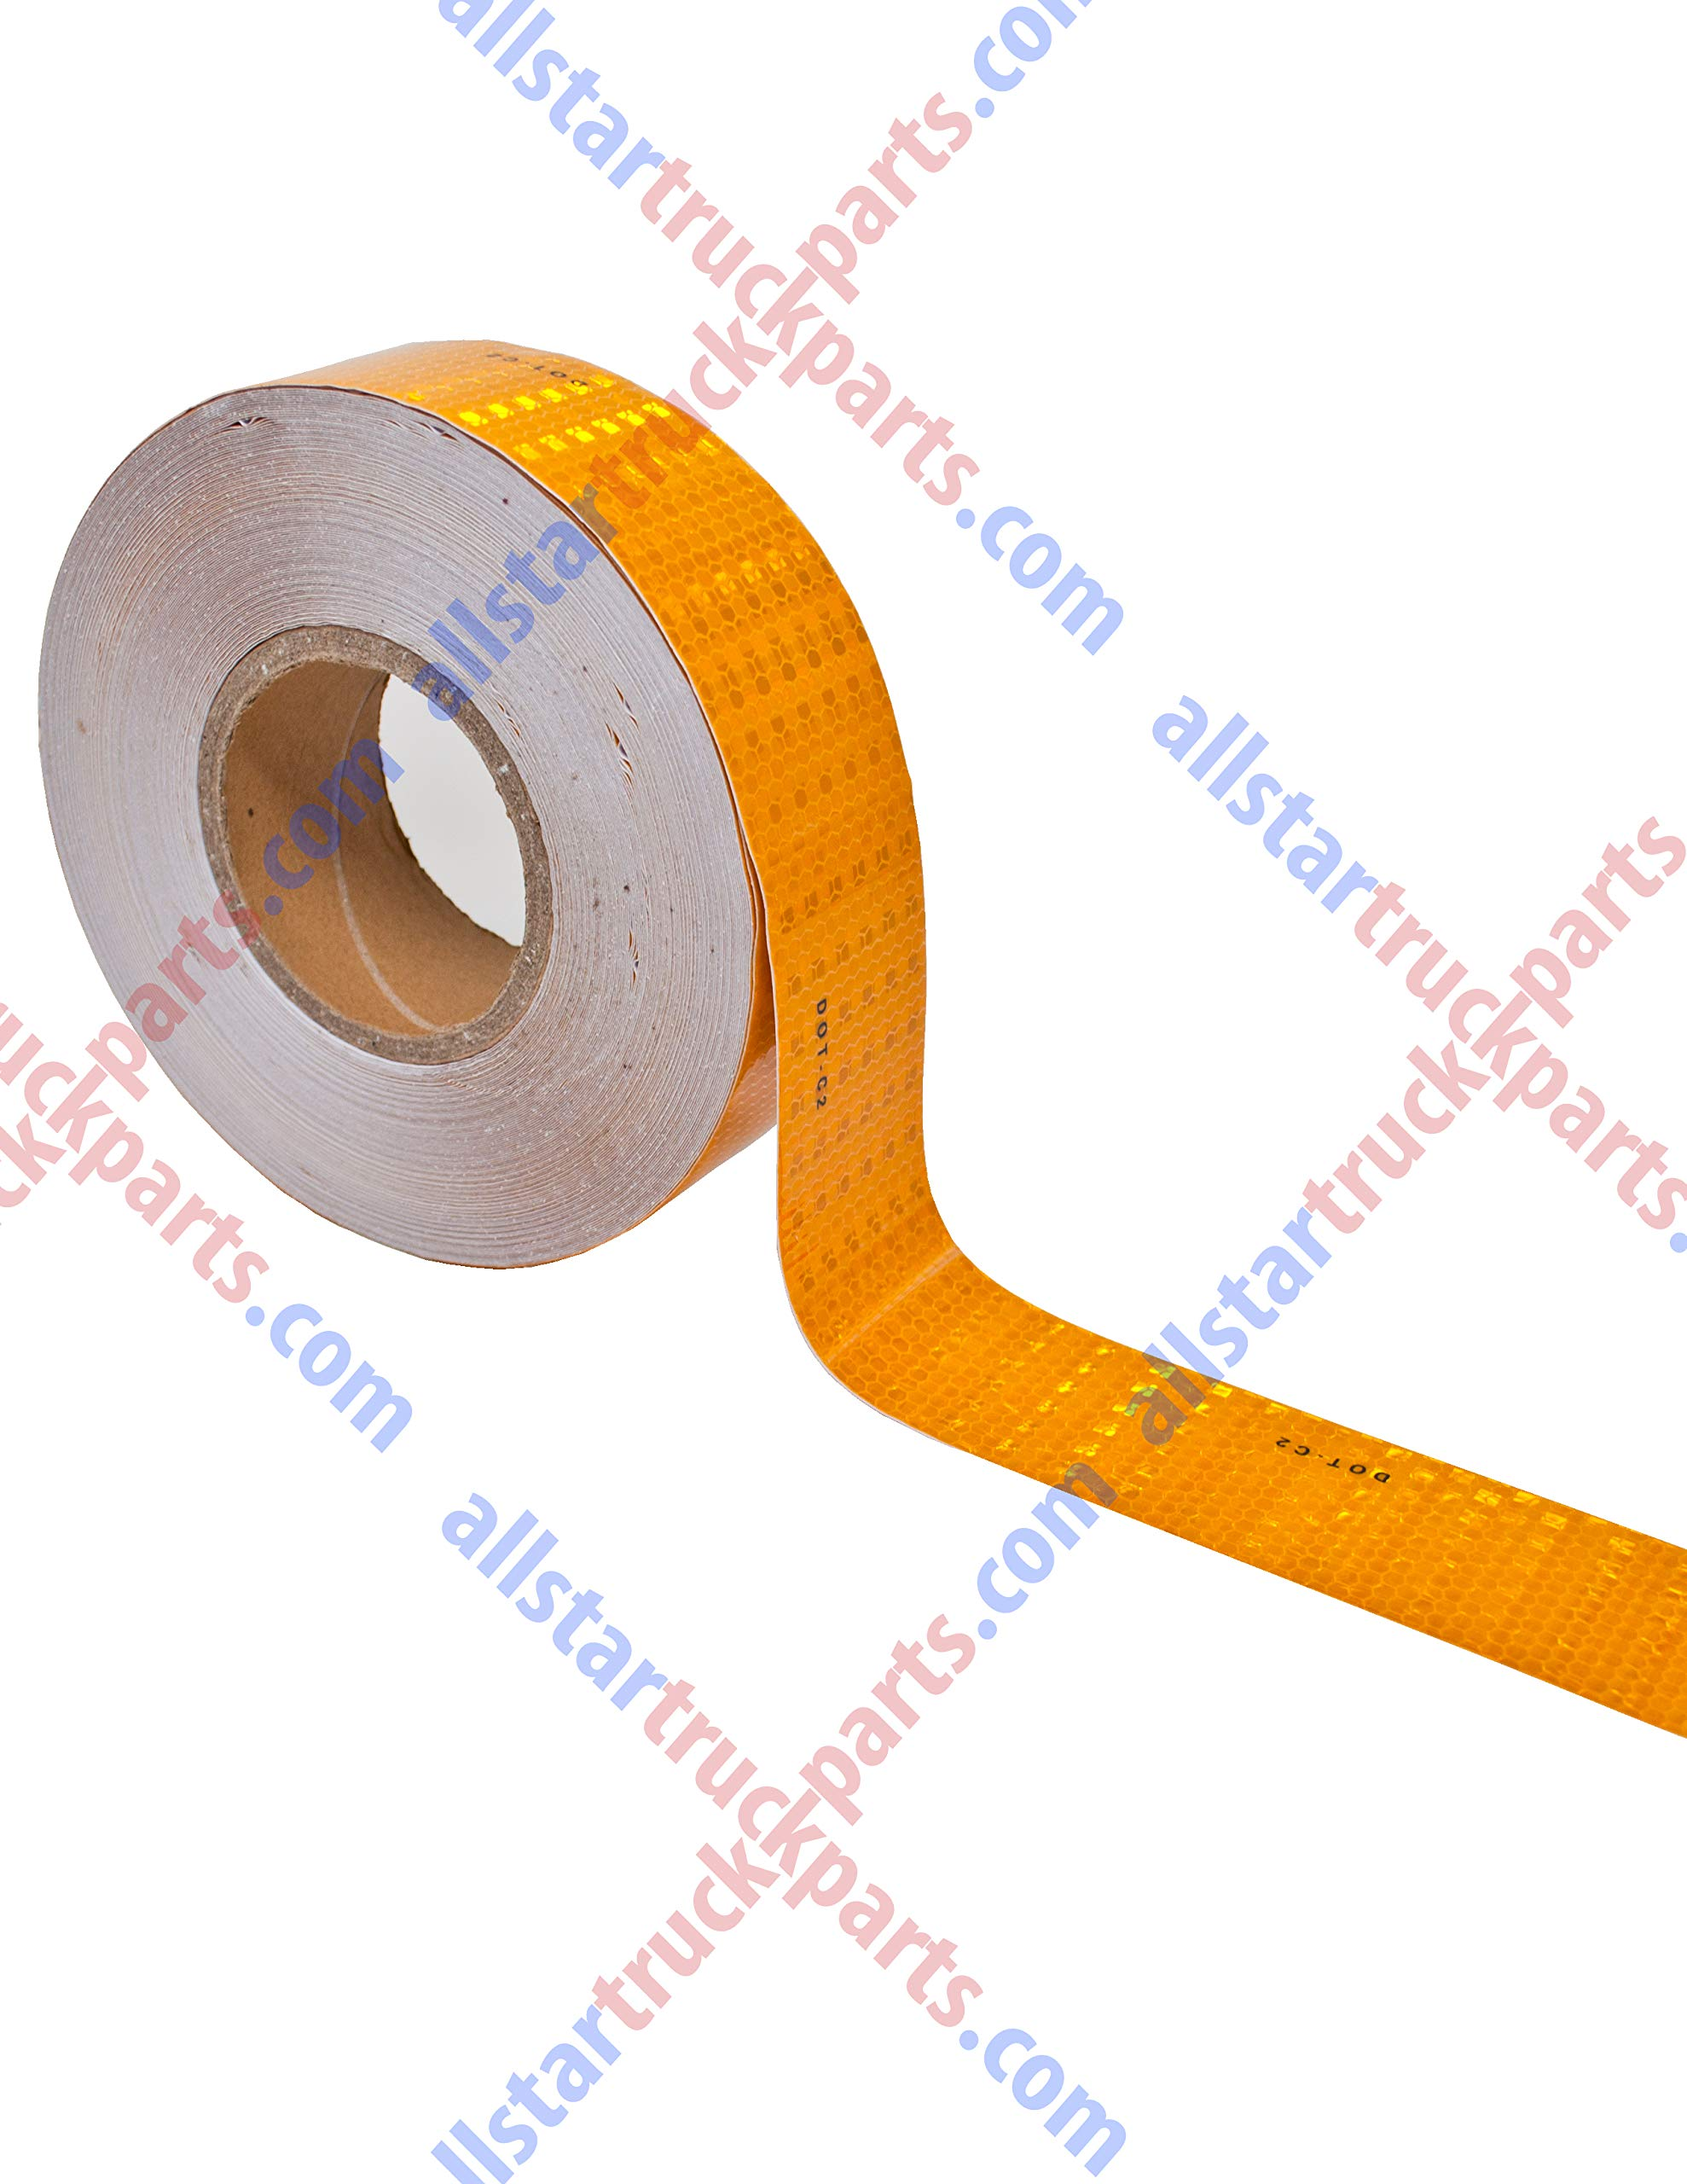 DOT Reflective Tape DOT-C2 Conspiciuity Tape - COMMERCIAL ROLL - 2'' inch x 150' FEET - Automobile Car Truck Boat Trailer Semi (Yellow/Orange)